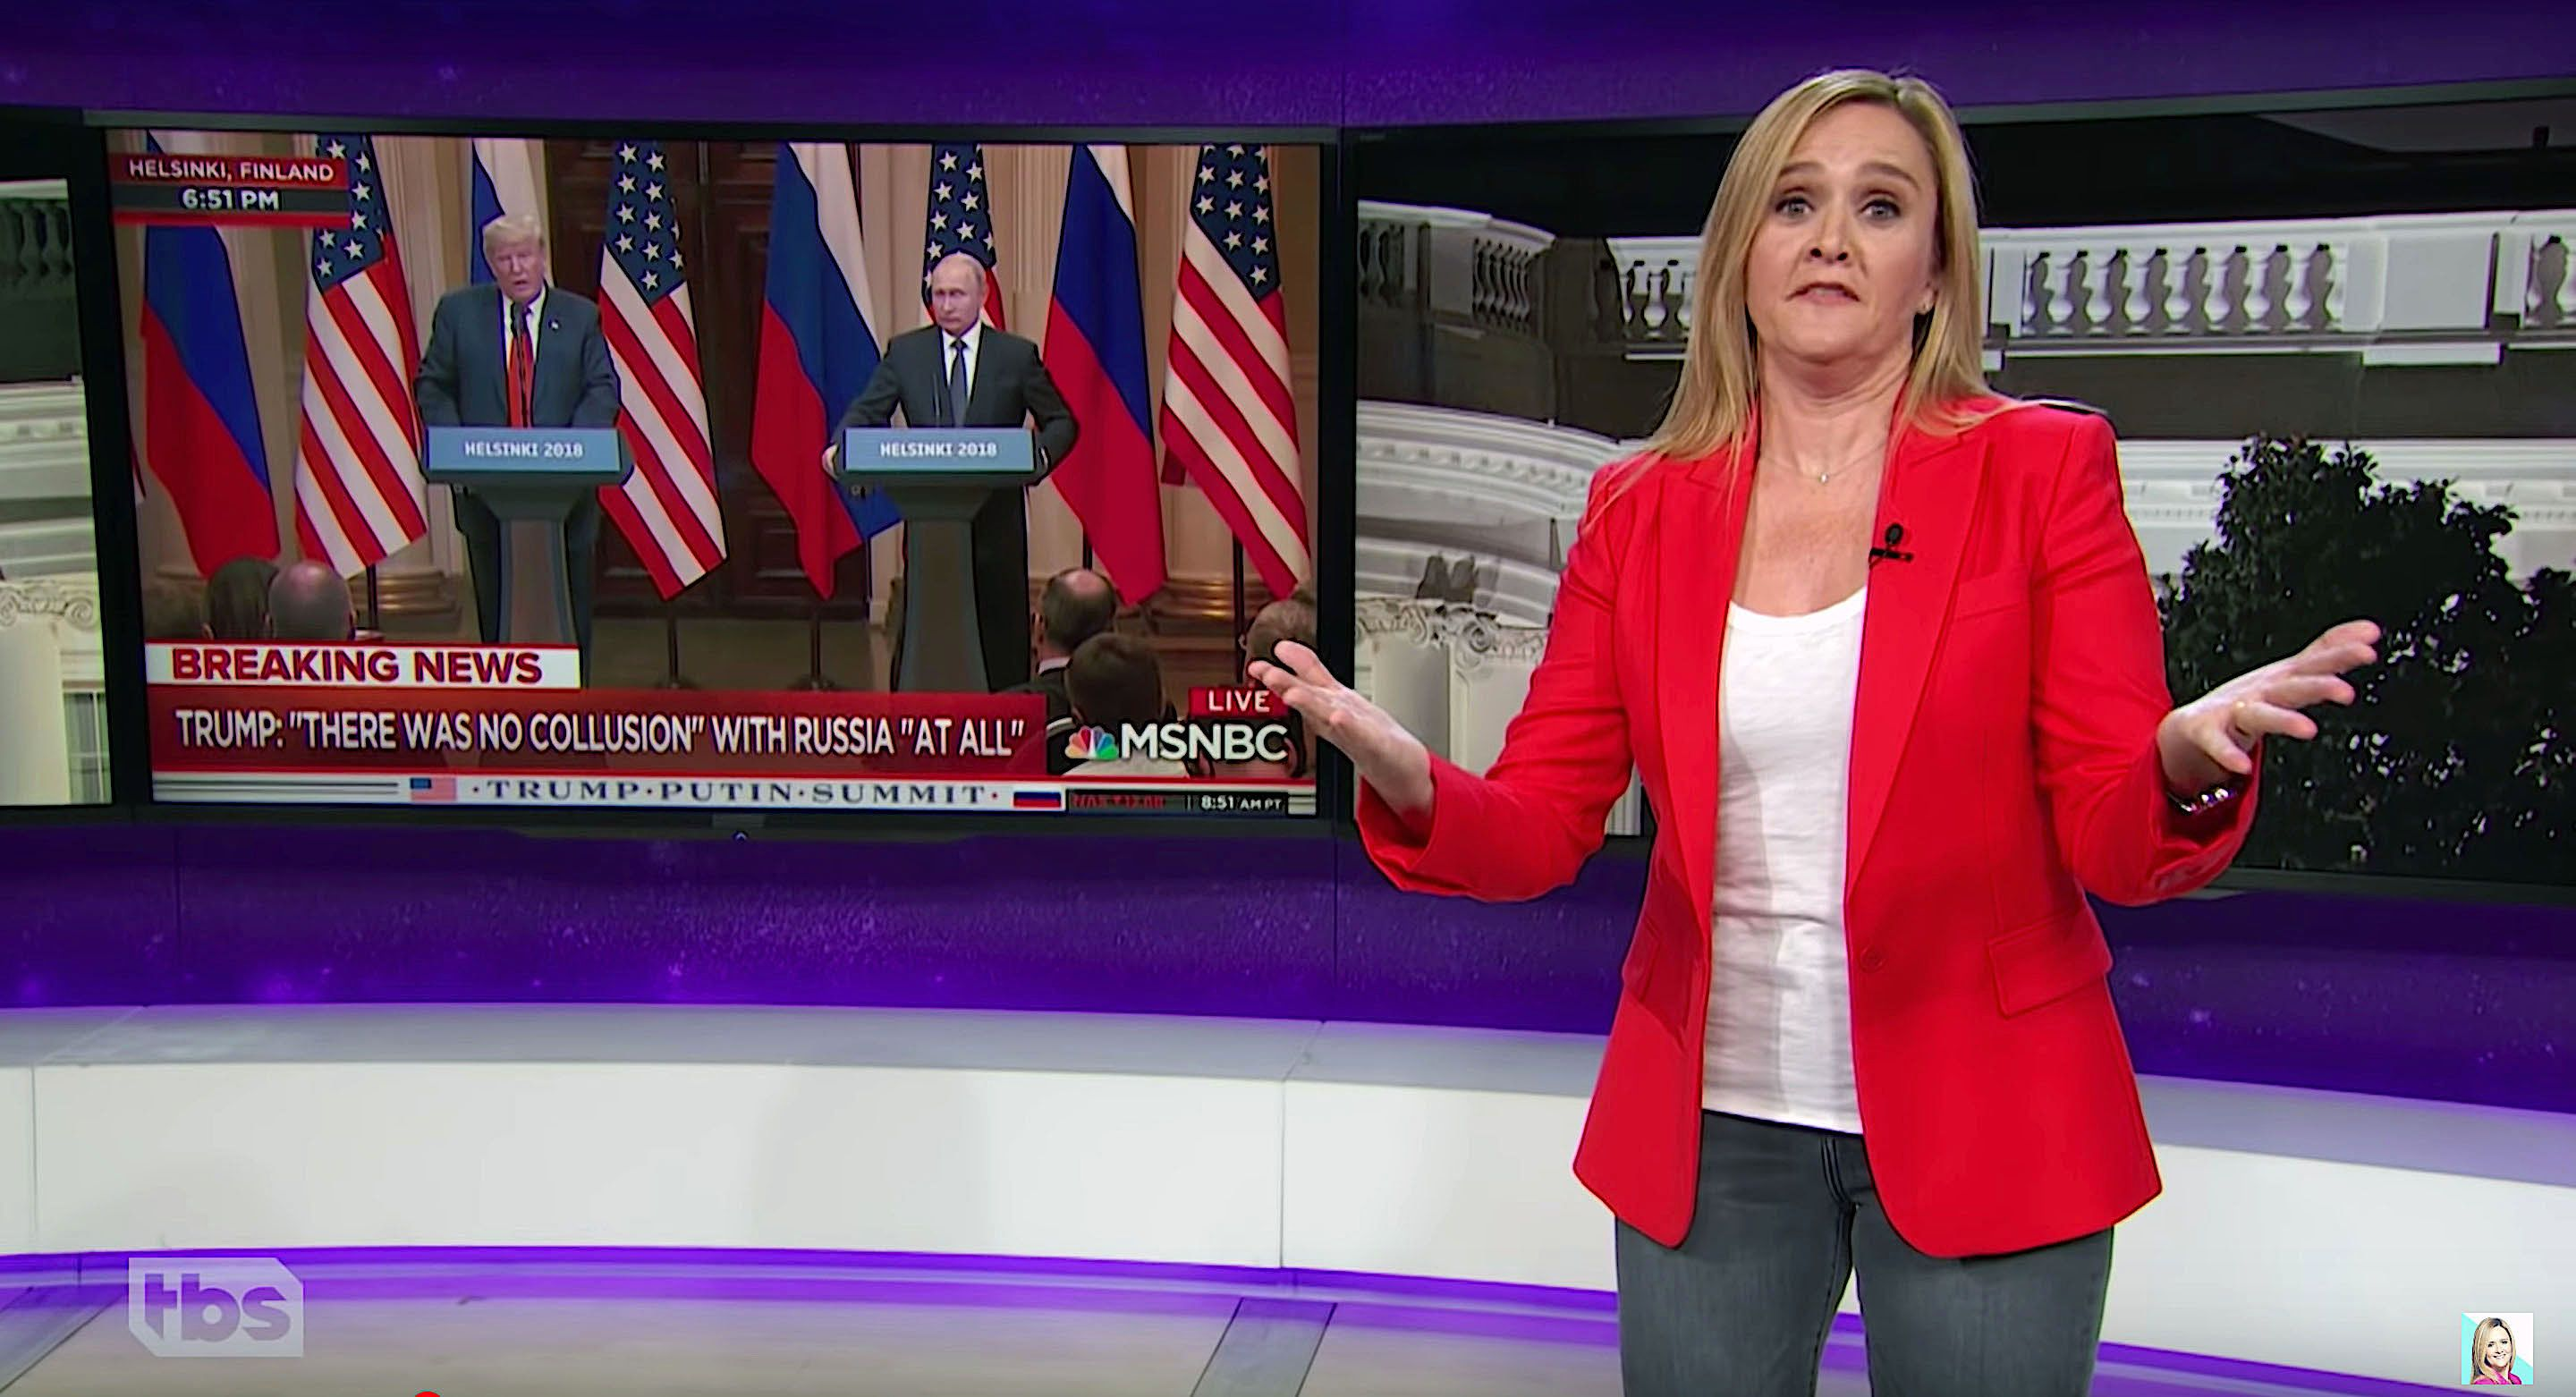 Samantha Bee of Full Frontal says the surprising thing about the Helsinki summit was not President Donald Trump